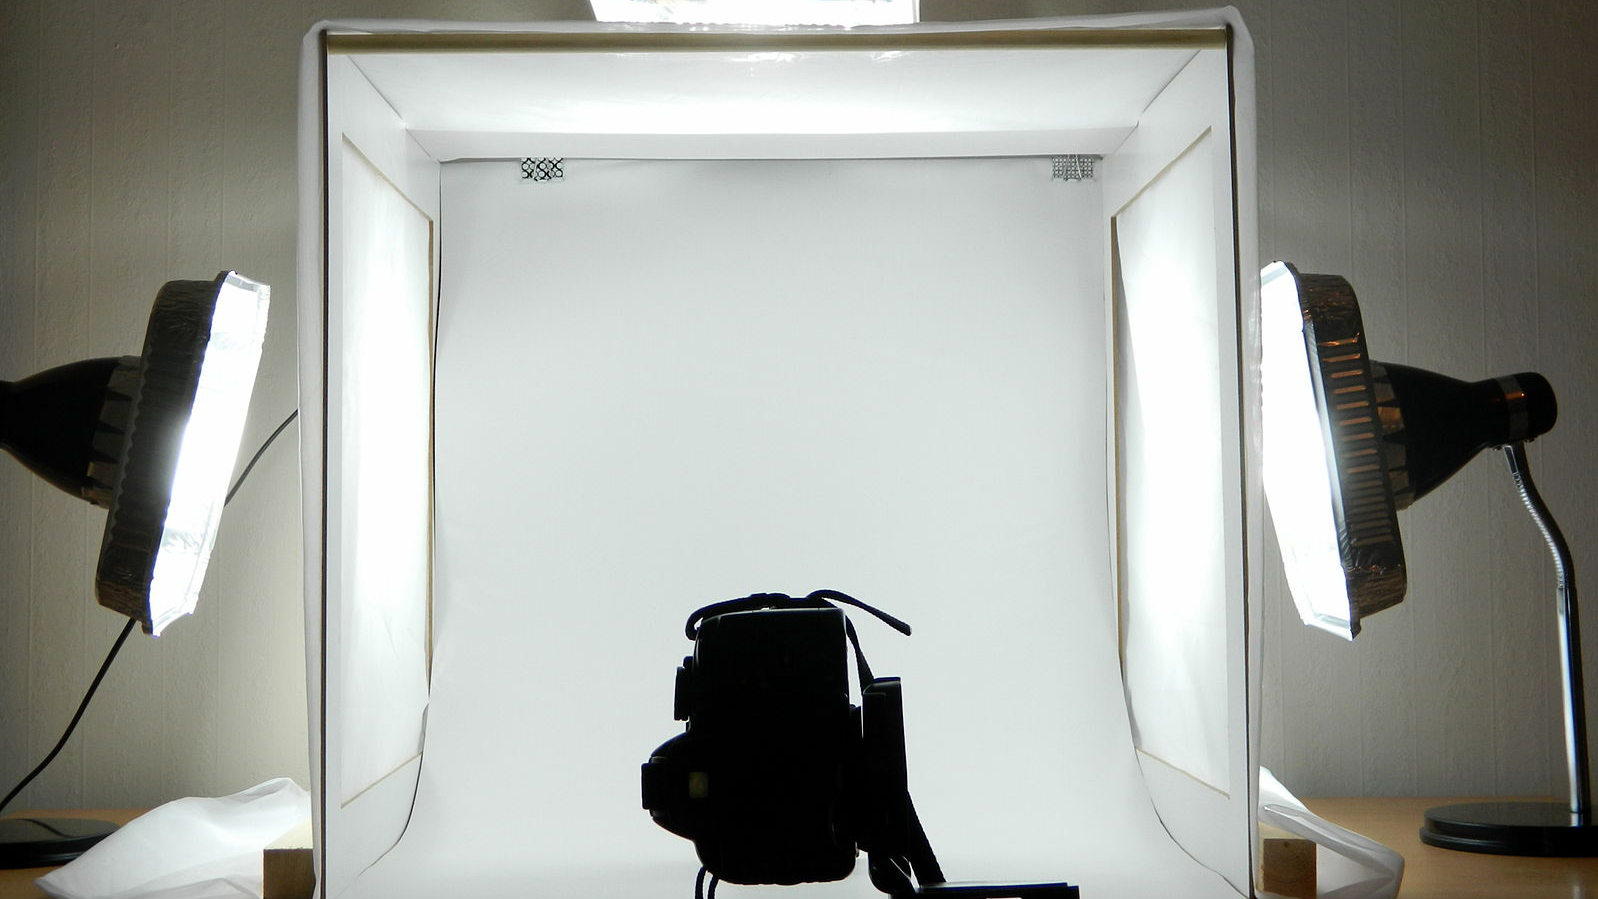 Set up your background for product shots